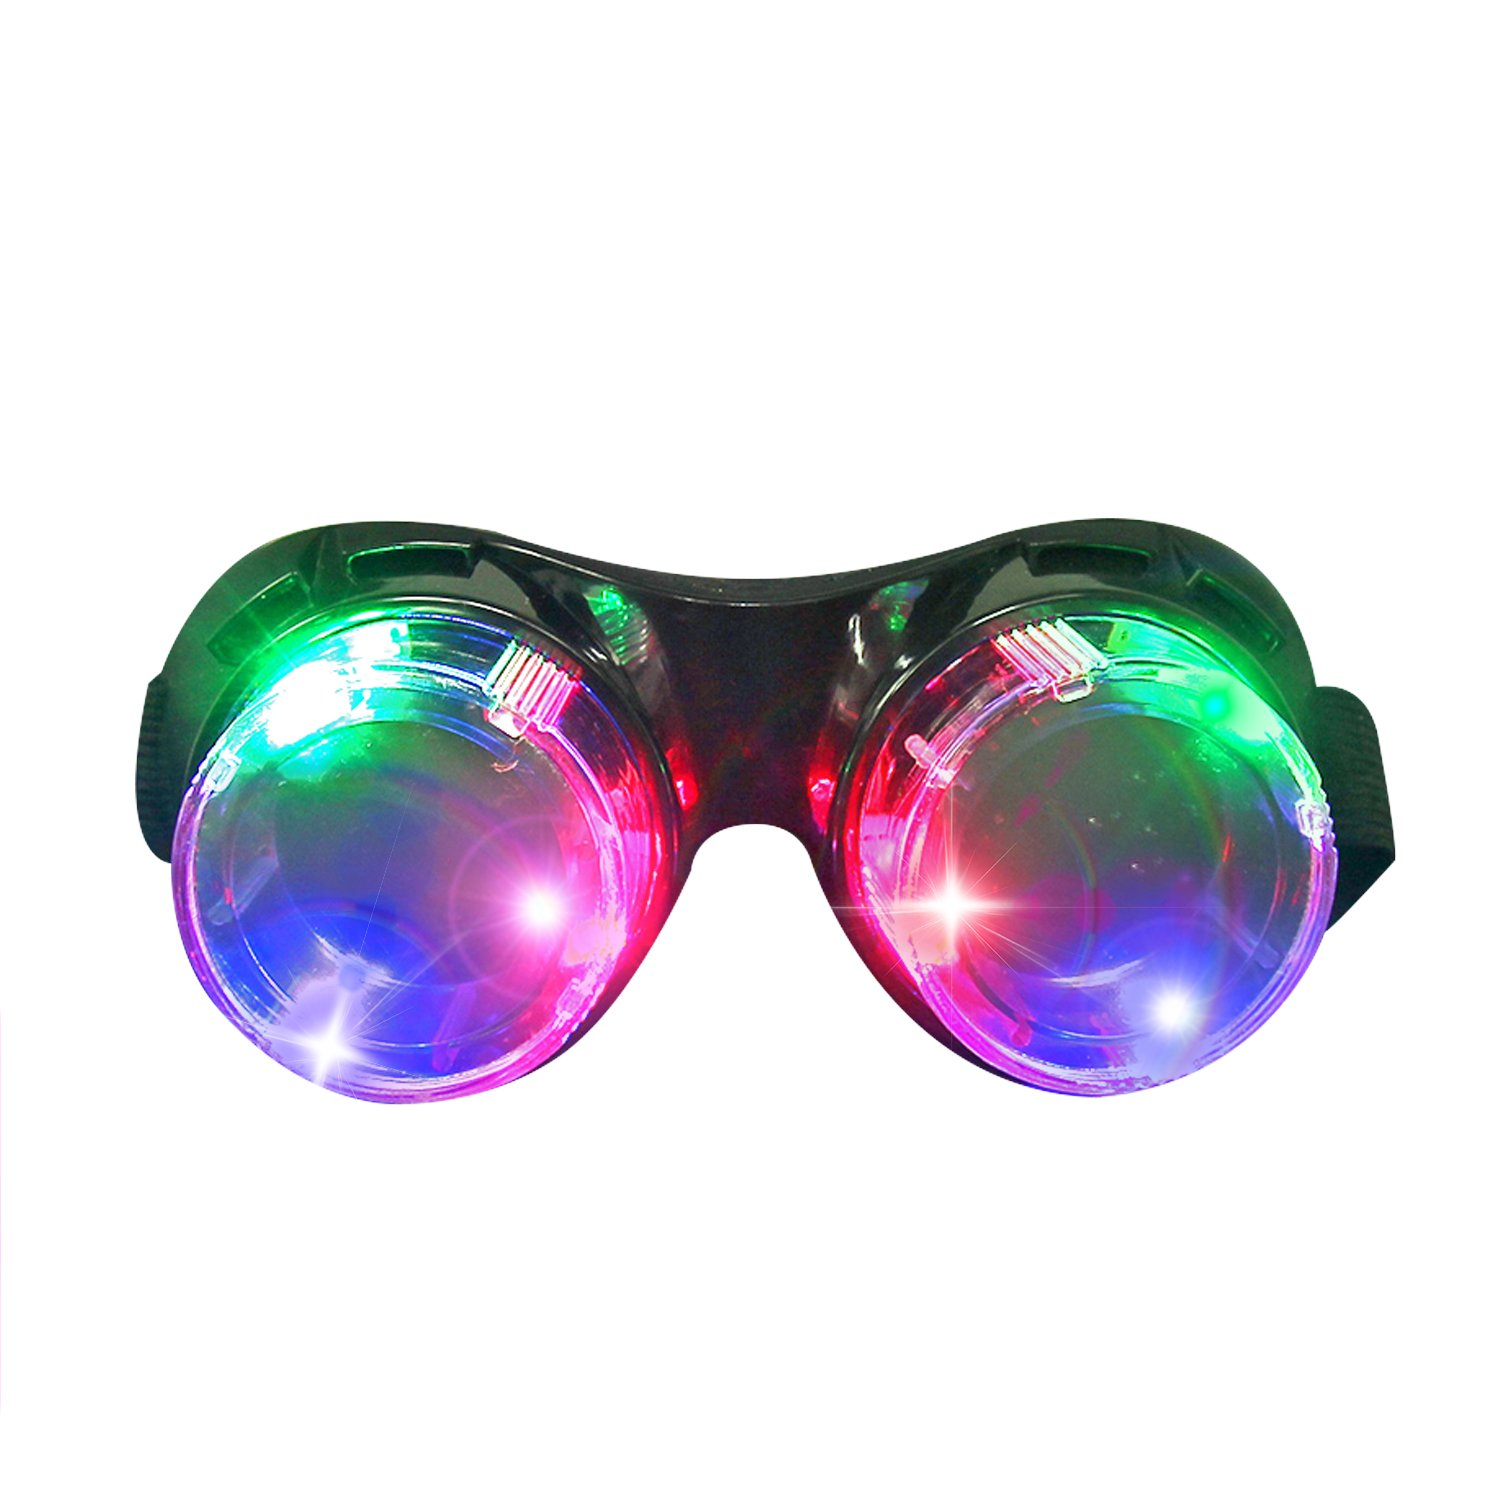 (No.2: Black) - Outdoor Goggles LED Windproof Eyeglasses Flashing Party Favours Glasses for Outdoor Camping Running Walking Cycling Party Concert by Daxin DX B01AXSPZQM No.2: Black